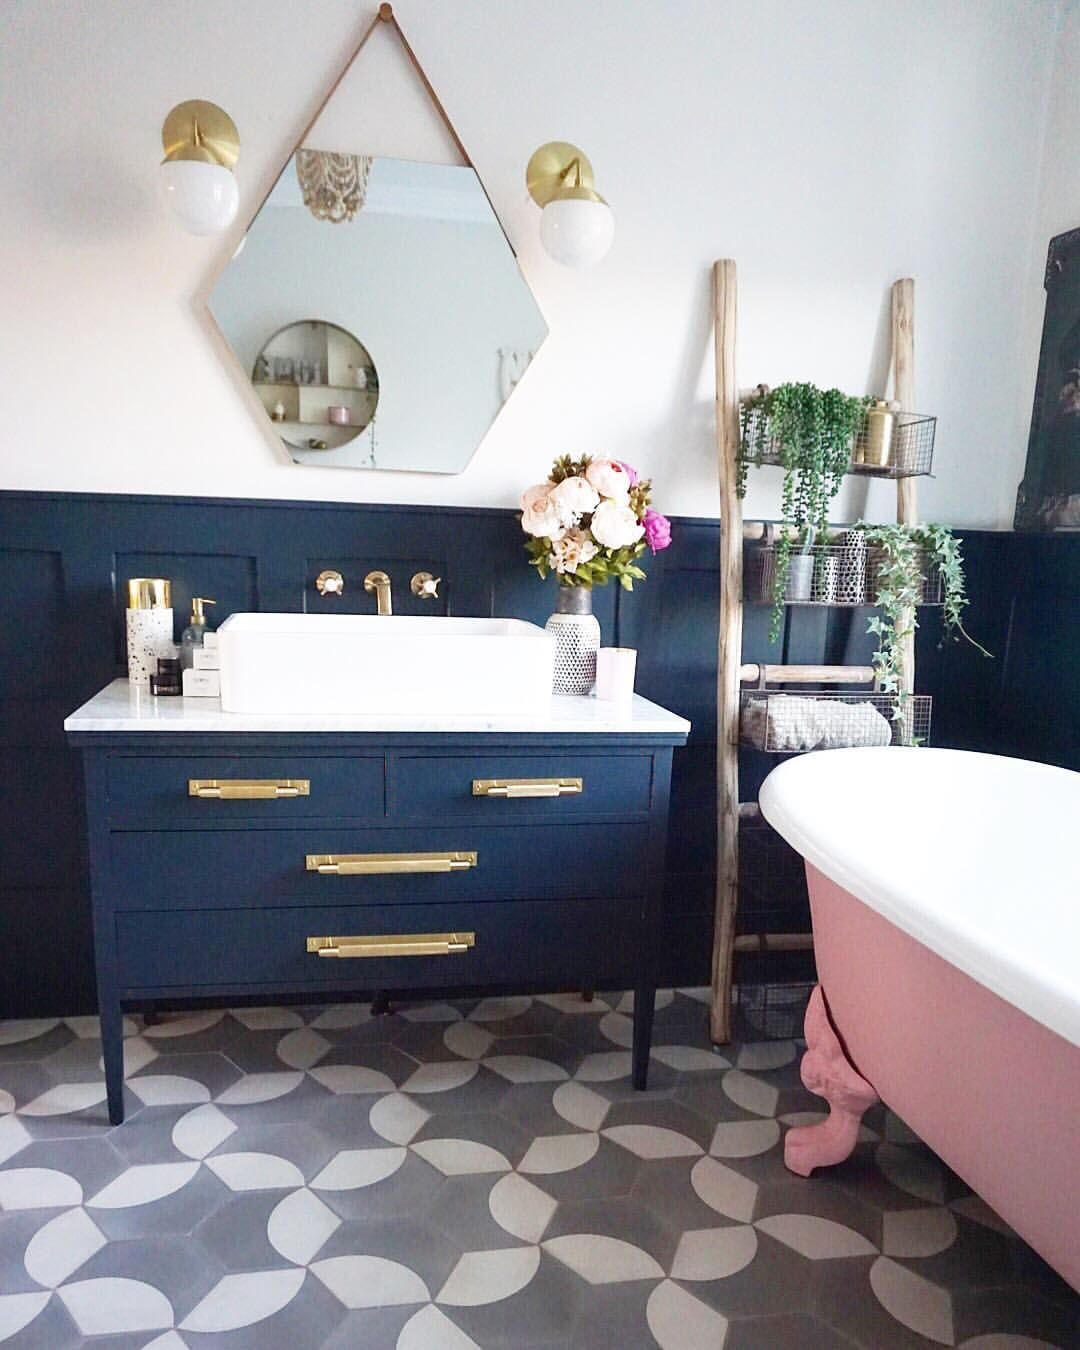 Retro bathroom with pink bear claw tub and gold fixtures | Home ...